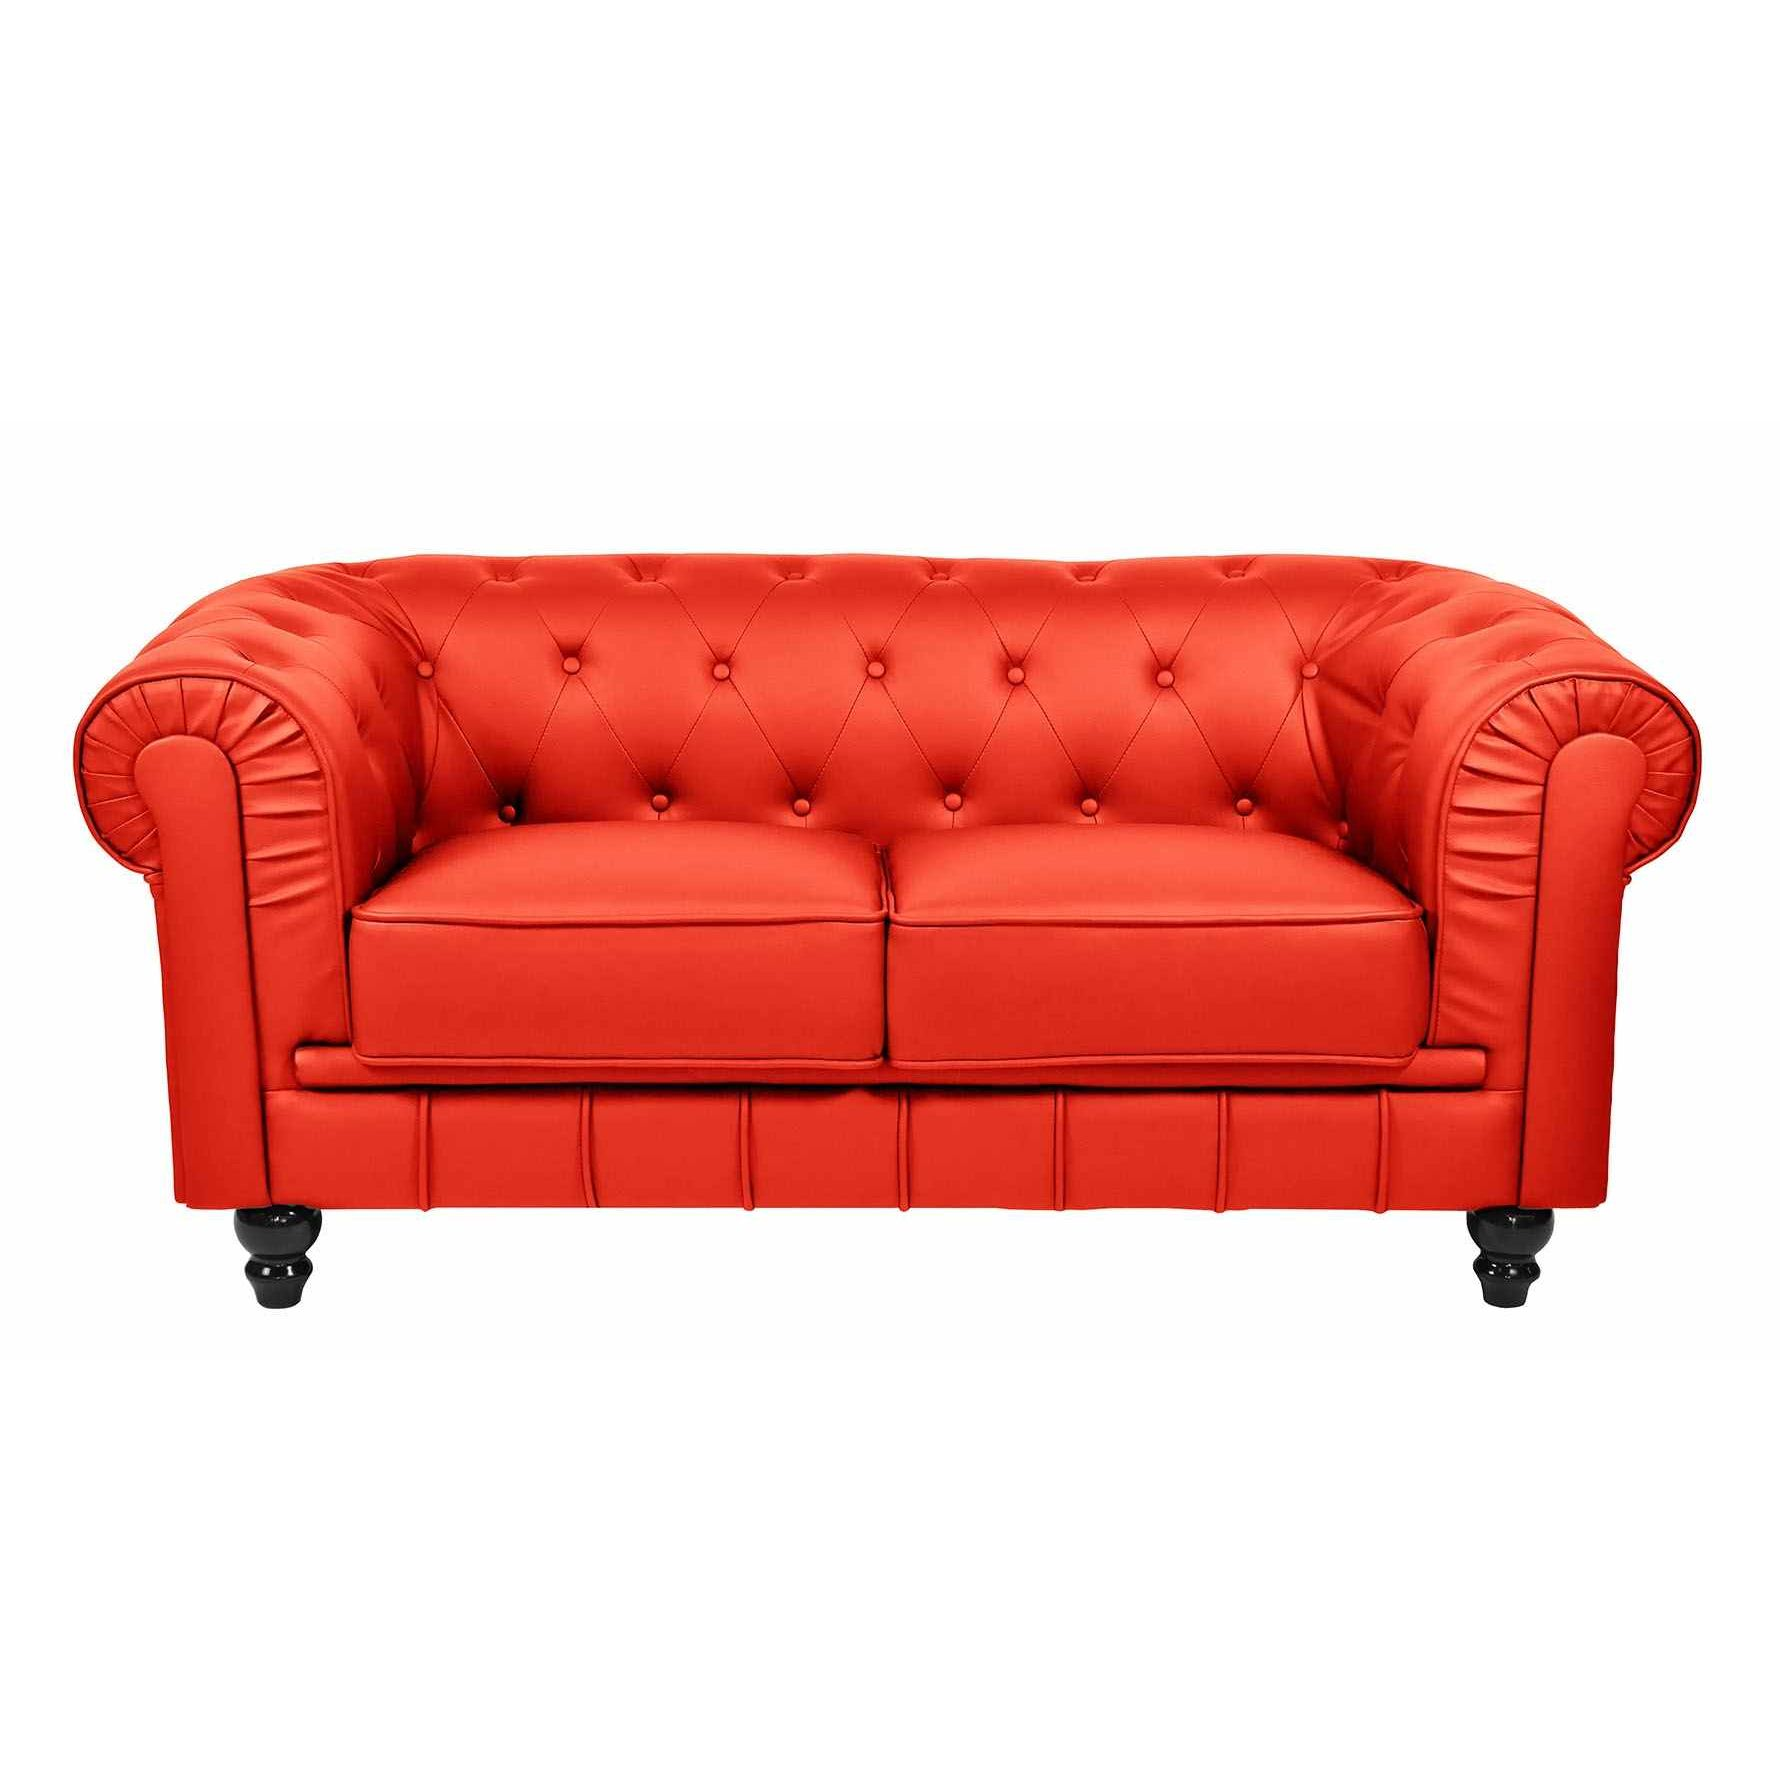 deco in paris canape 2 places rouge chesterfield can chester 2p pu rouge. Black Bedroom Furniture Sets. Home Design Ideas